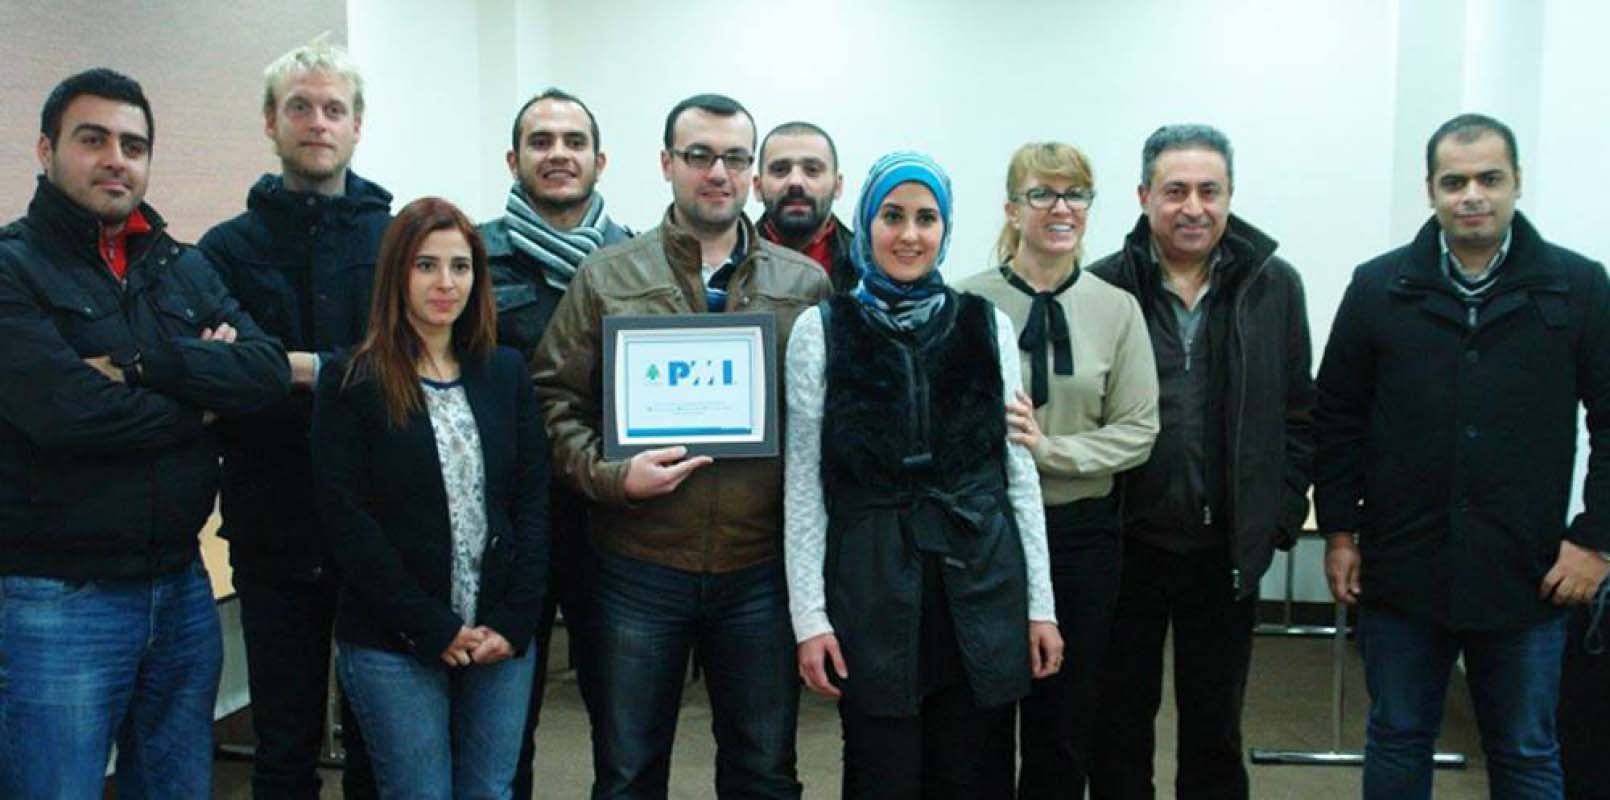 Group of students pose while one holds up a certificate